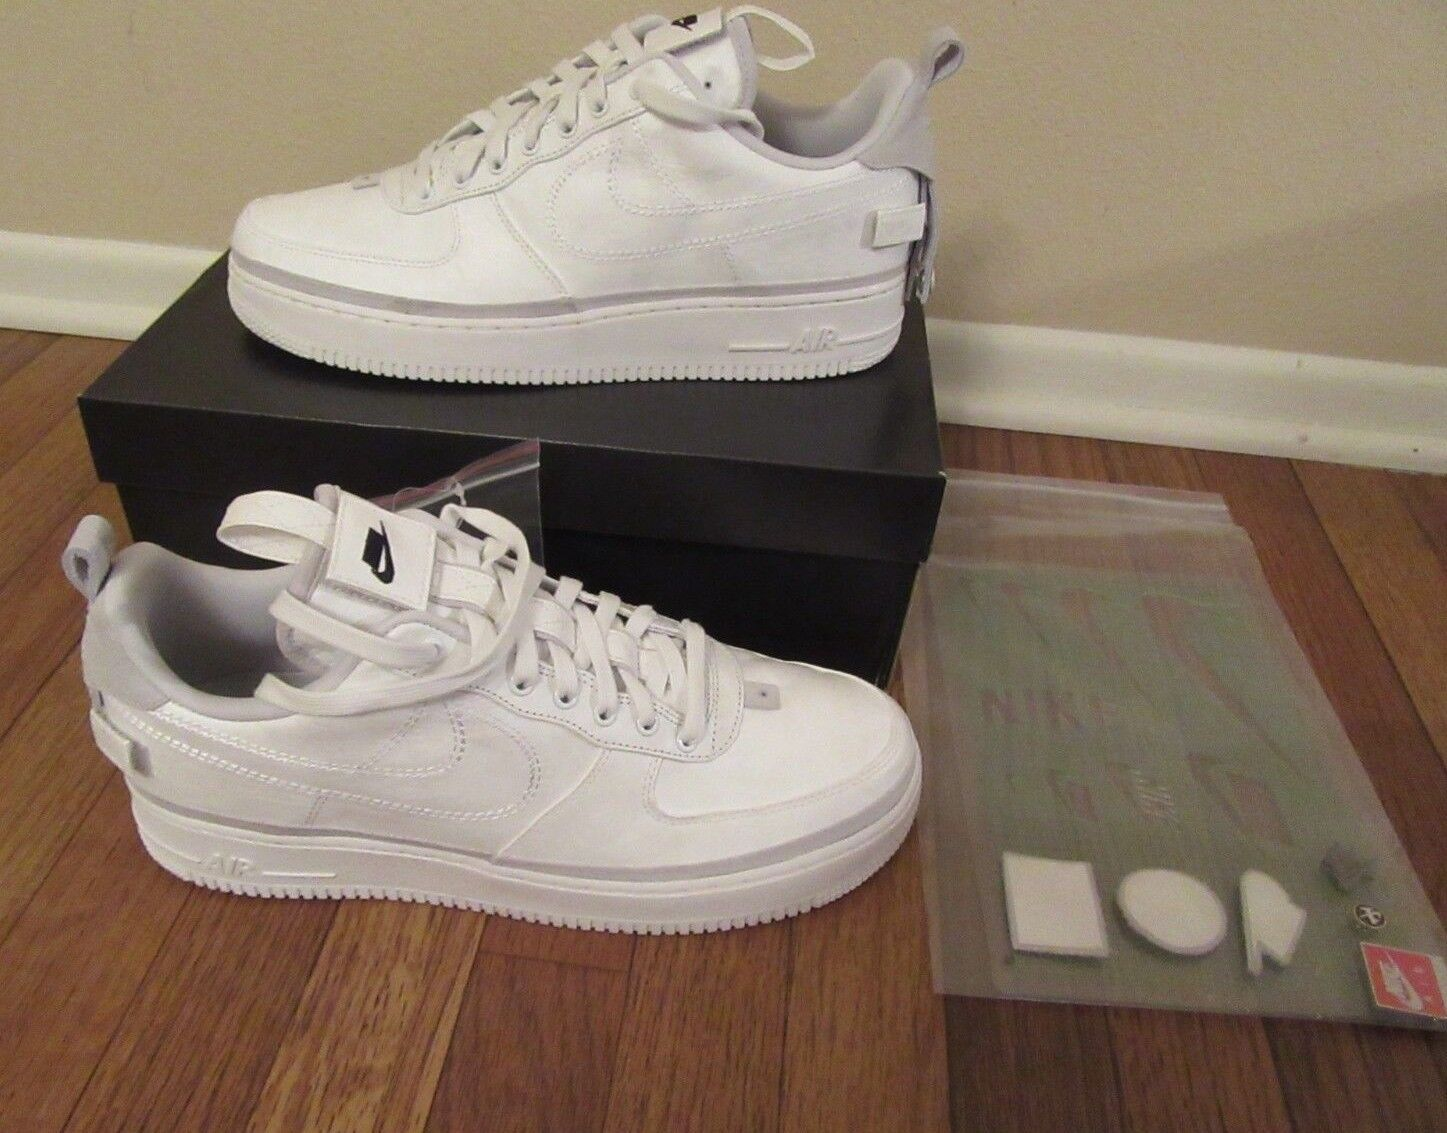 Nike Air Force 1 '07 AS QS 90 10 Size 11.5 Vast Grey White AH6767 001 New NIB